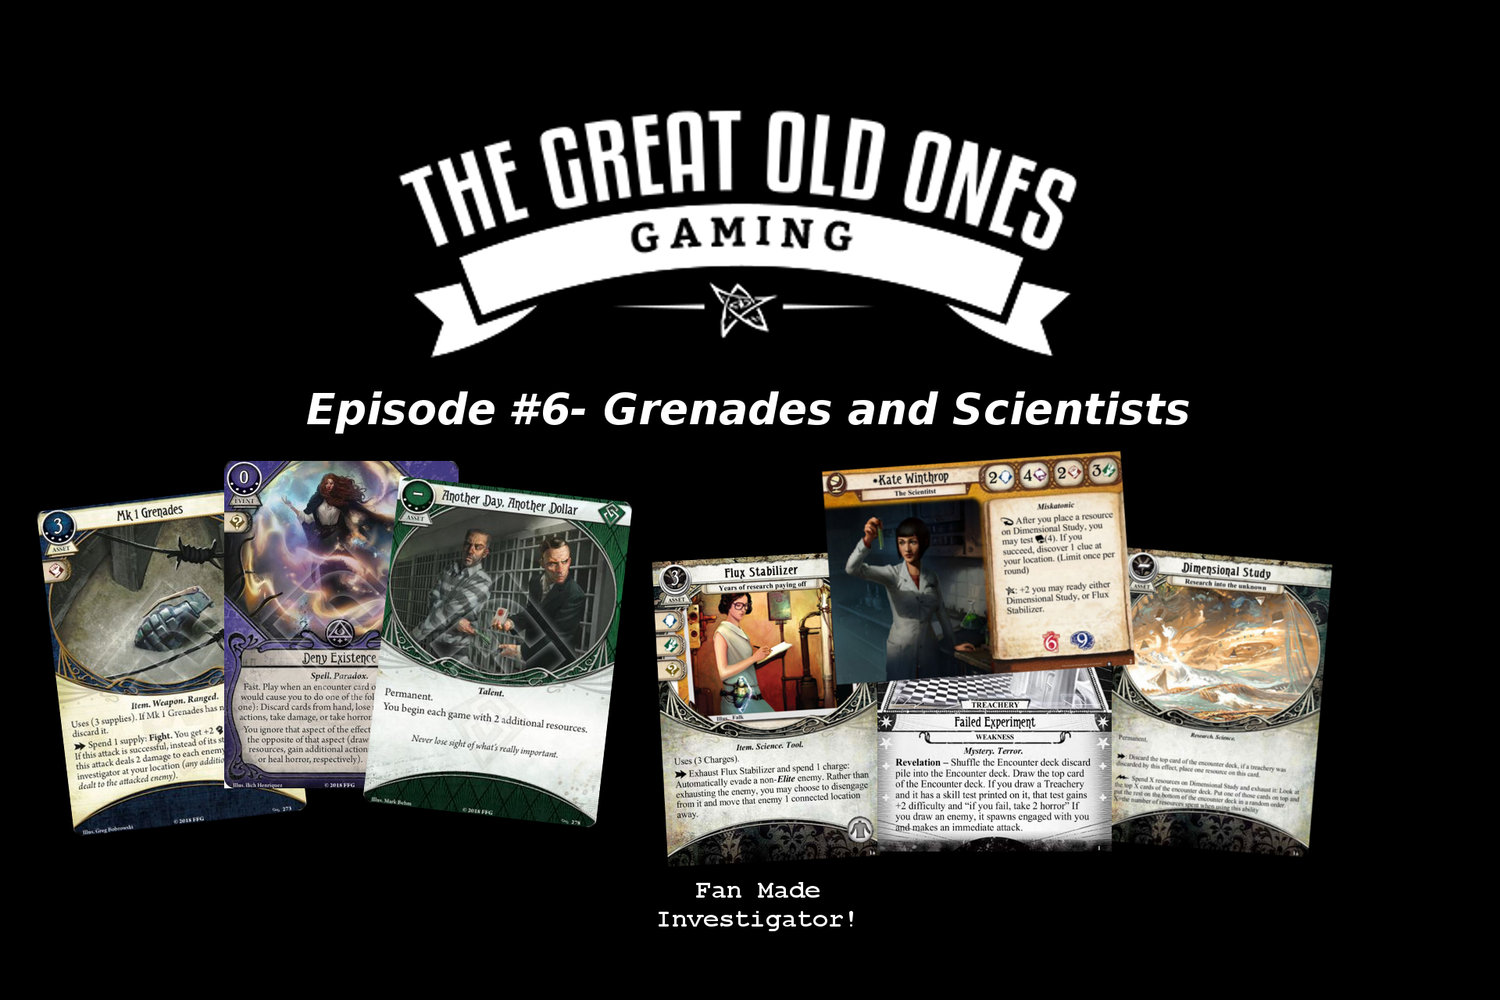 The Great Old Ones Gaming Podcast: Episode #6- Grenades and